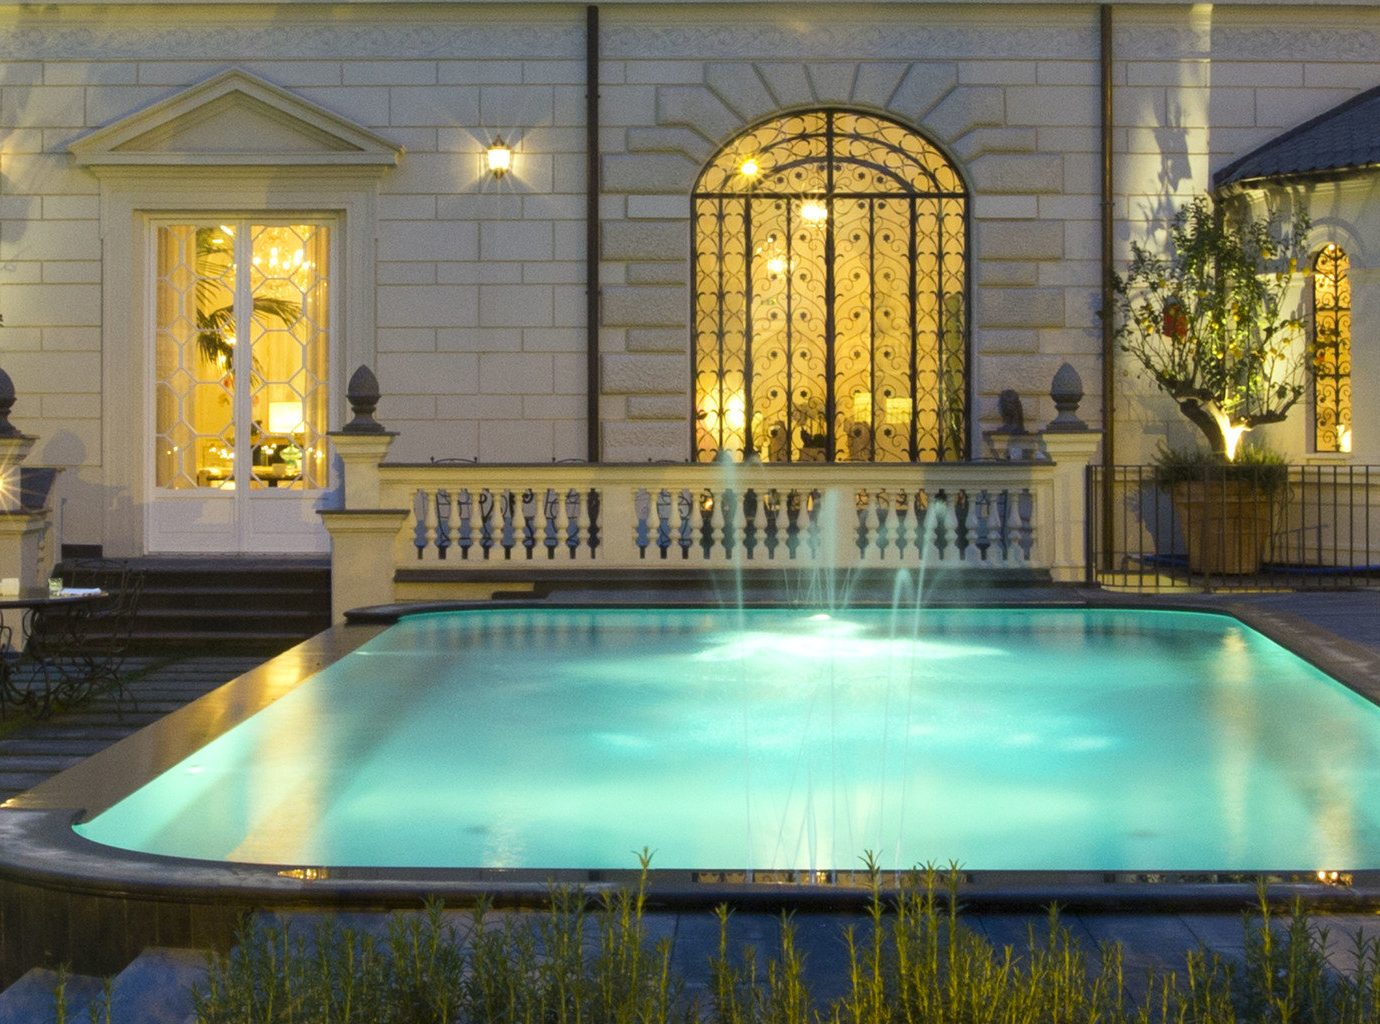 Boutique Hotels Hotels swimming pool property leisure estate mansion reflecting pool Resort palace plaza Courtyard Villa